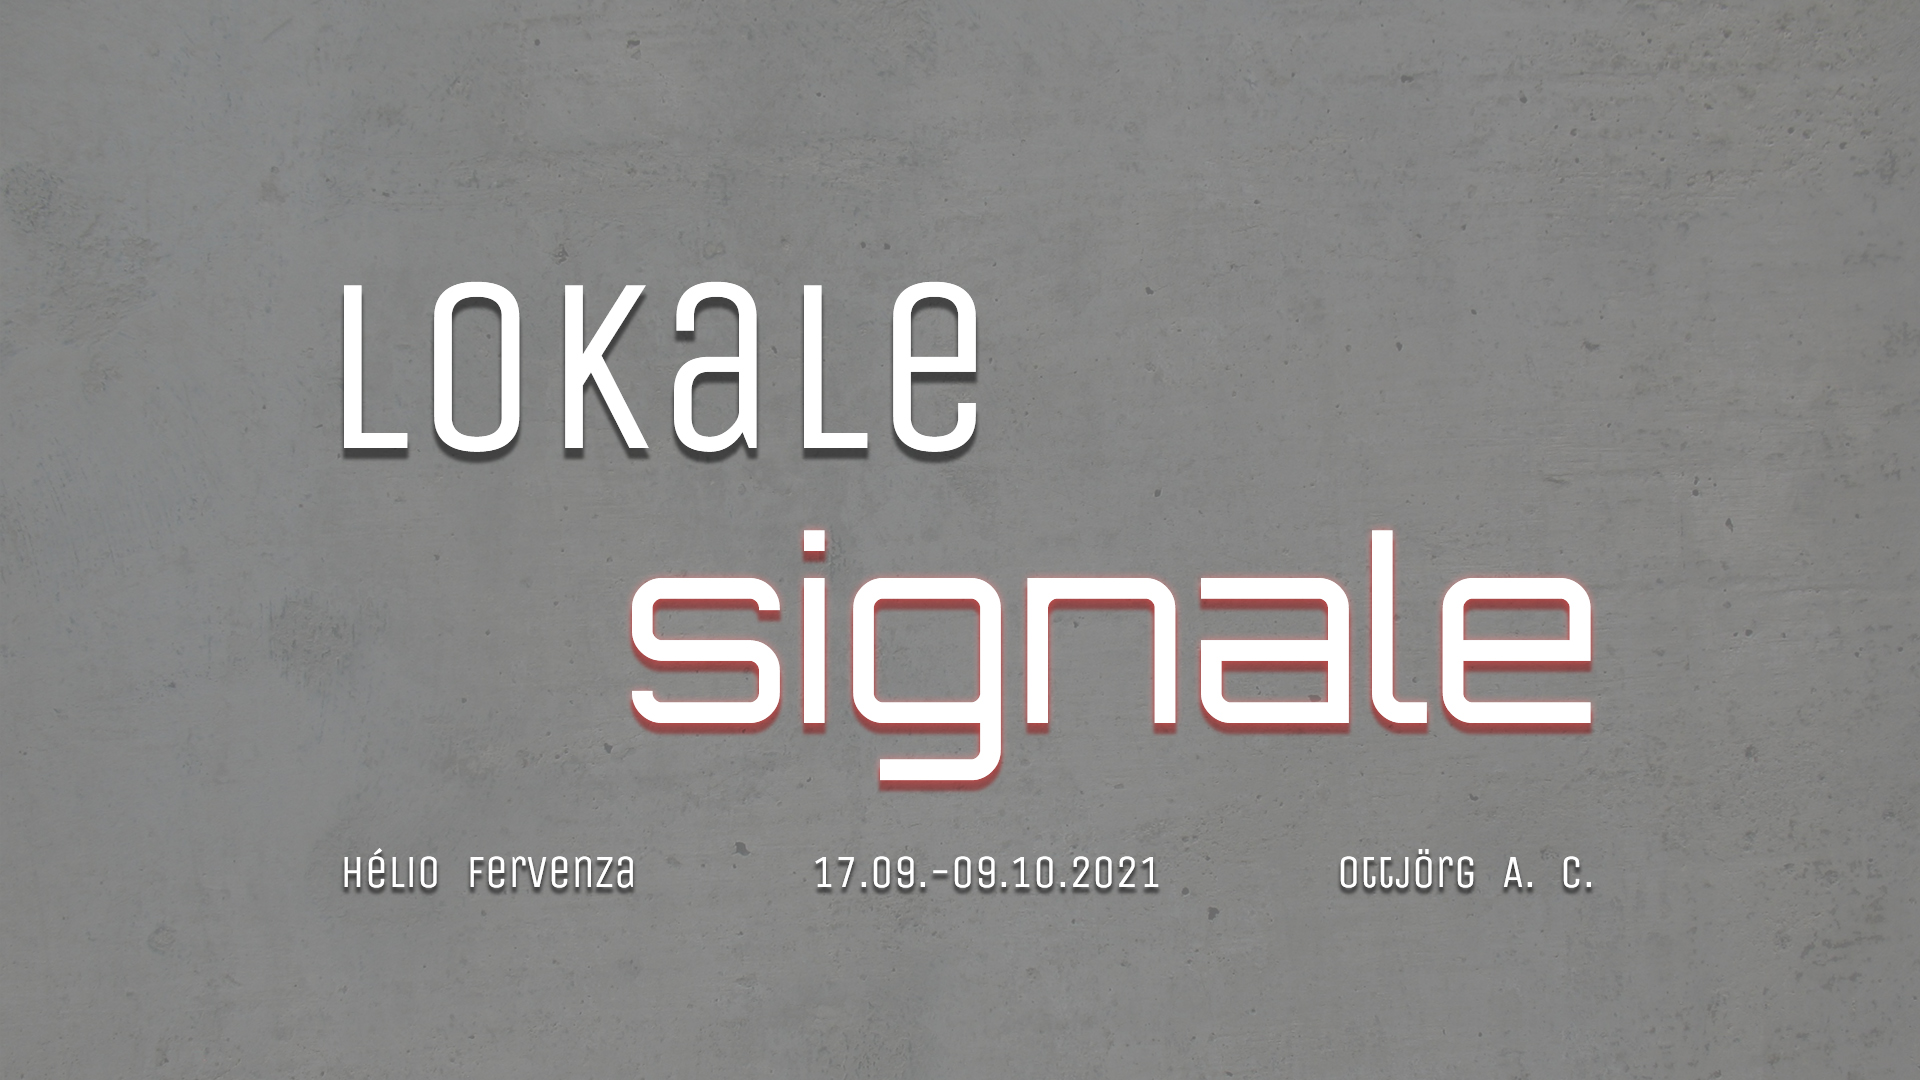 Lokale Signale poster